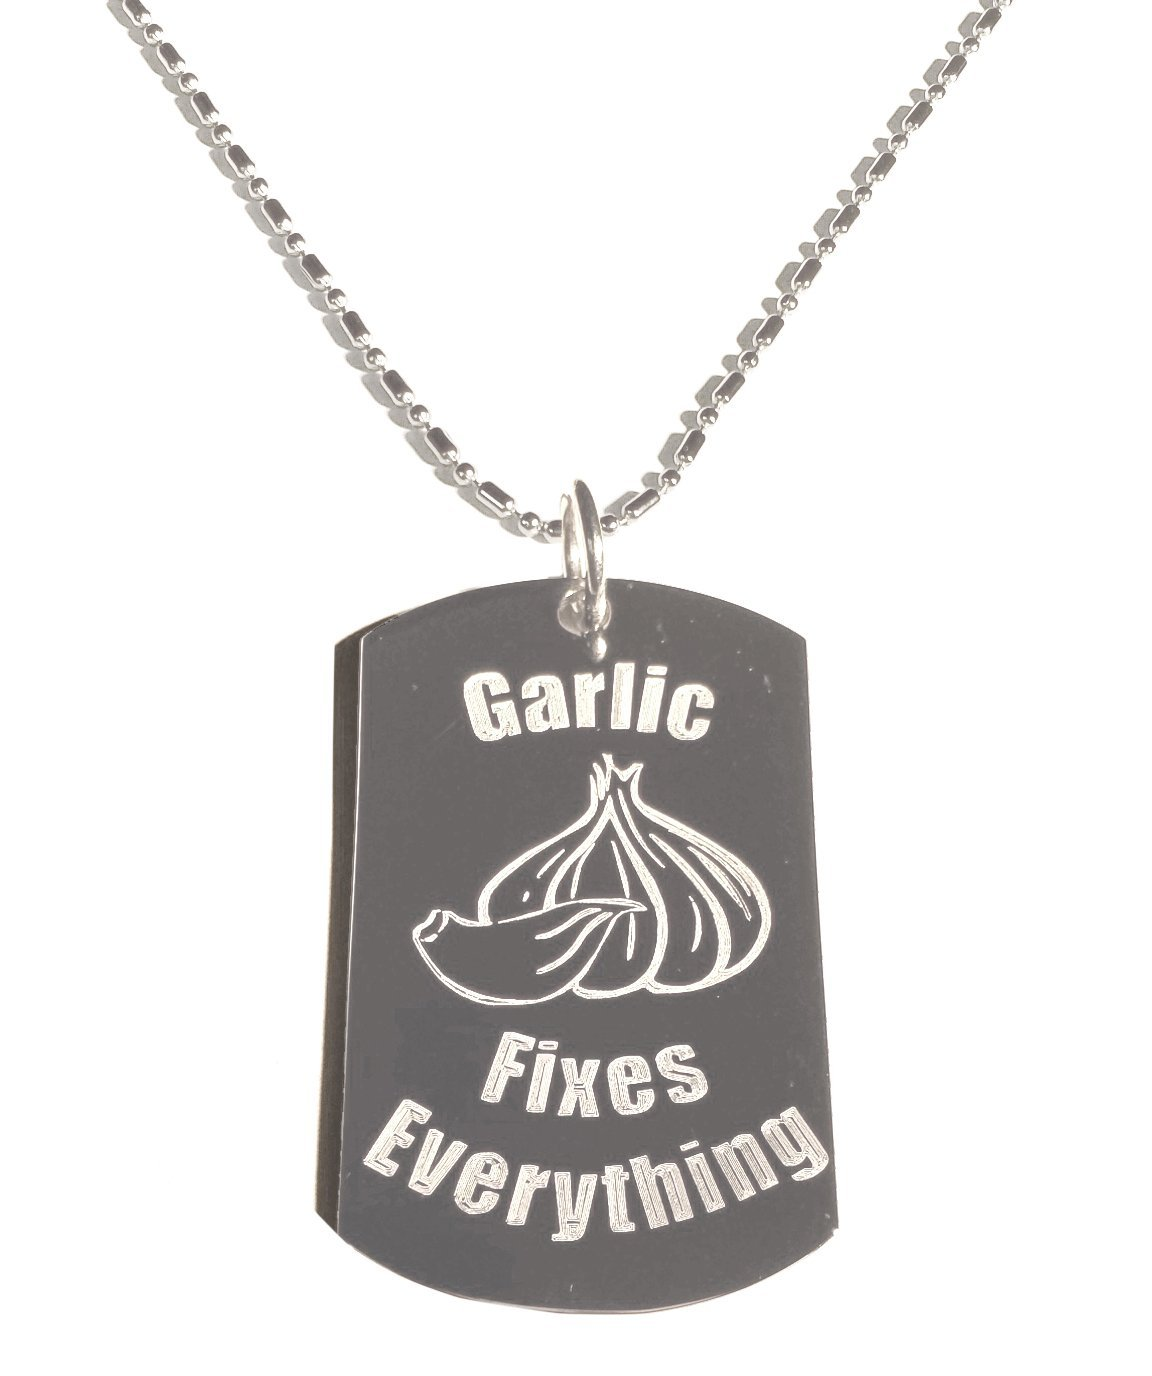 Garlic Fixes Everything - Luggage Metal Chain Necklace Military Dog Tag